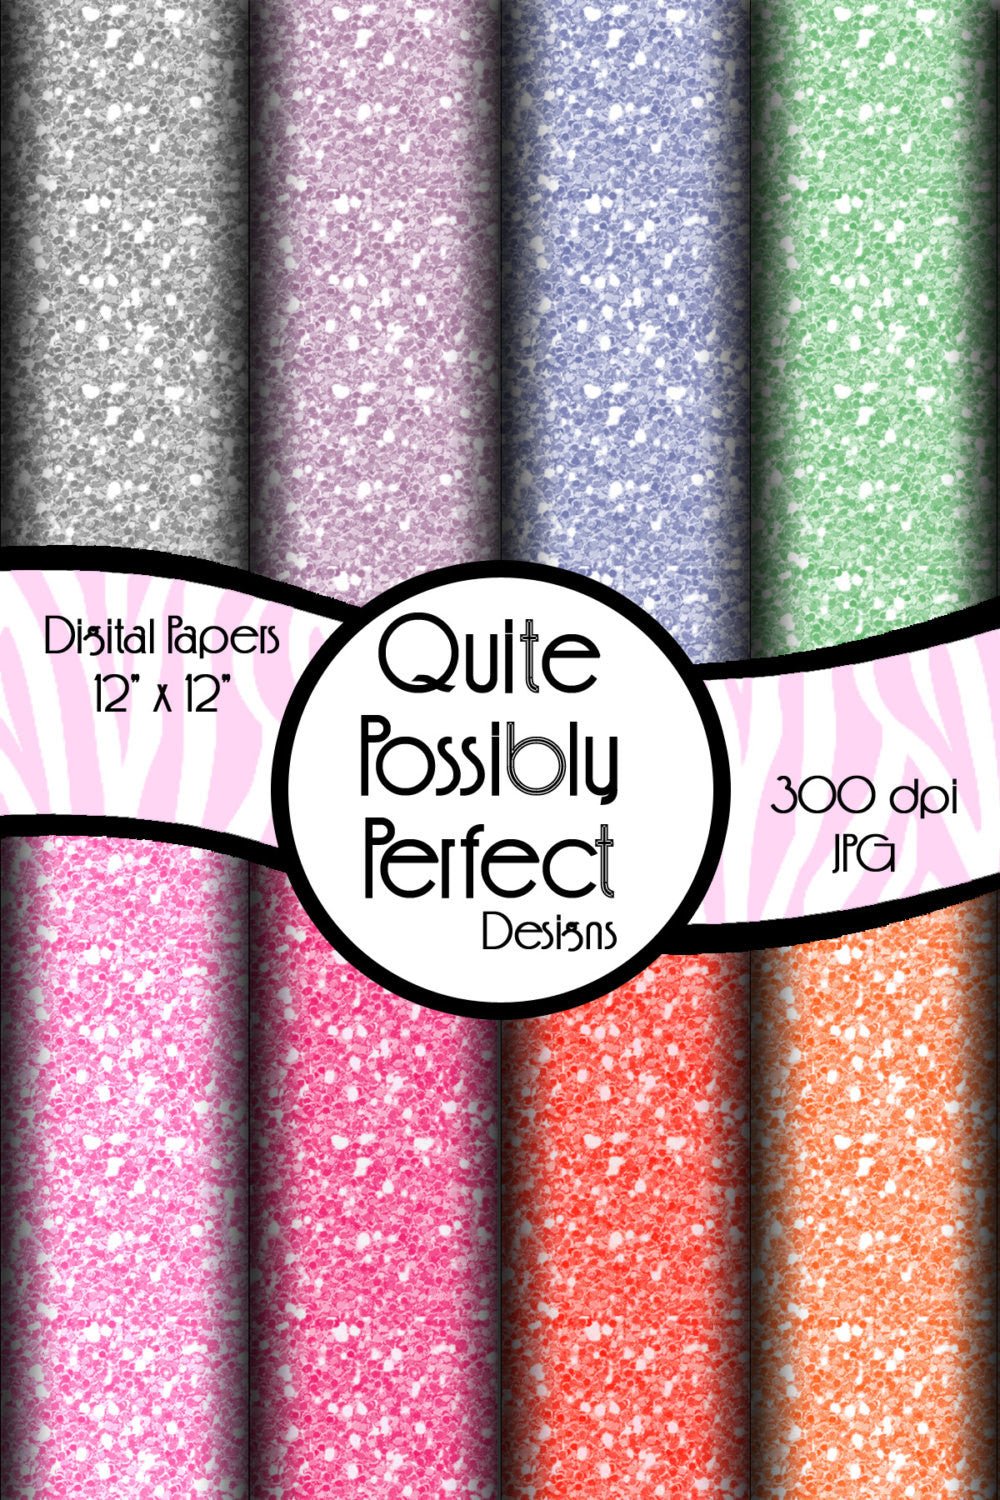 Pastel Large Glitter Papers Digital Paper Pack Instant Download (DGP108) for Scrapbooking, Collage Sheets,Greeting Cards, Bottle Caps